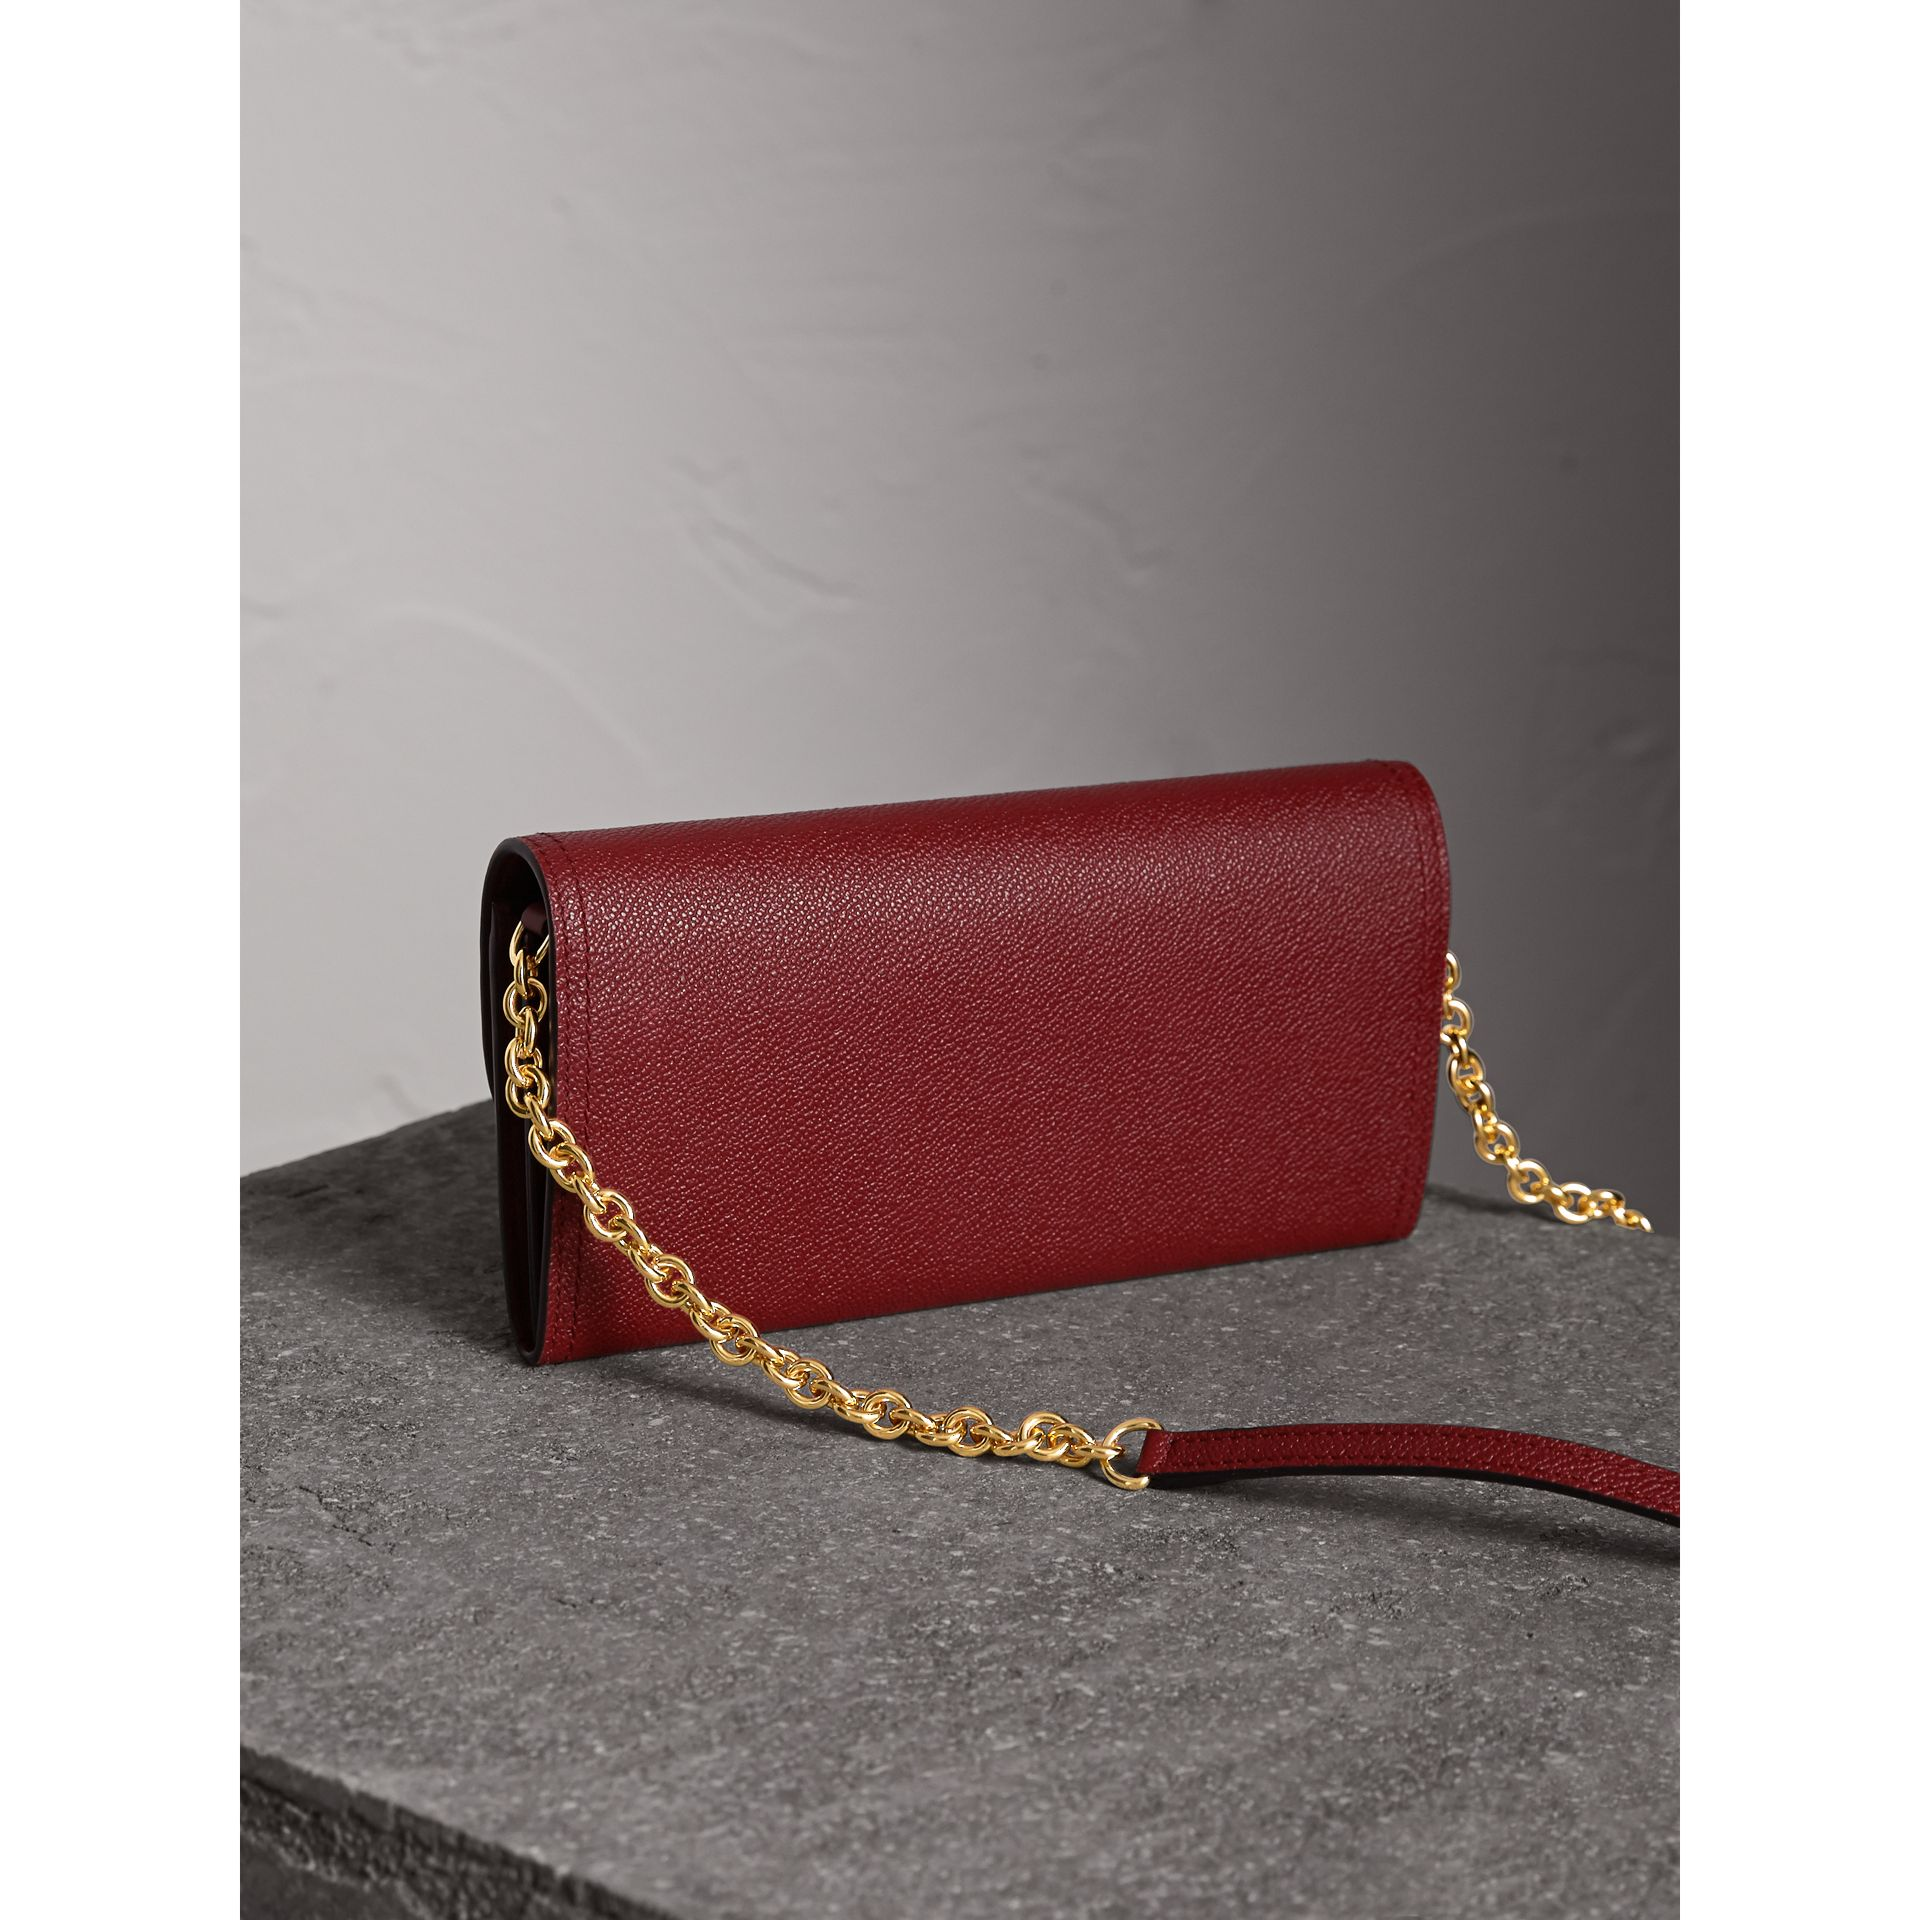 Leather Wallet with Chain in Burgundy - Women | Burberry United States - gallery image 5